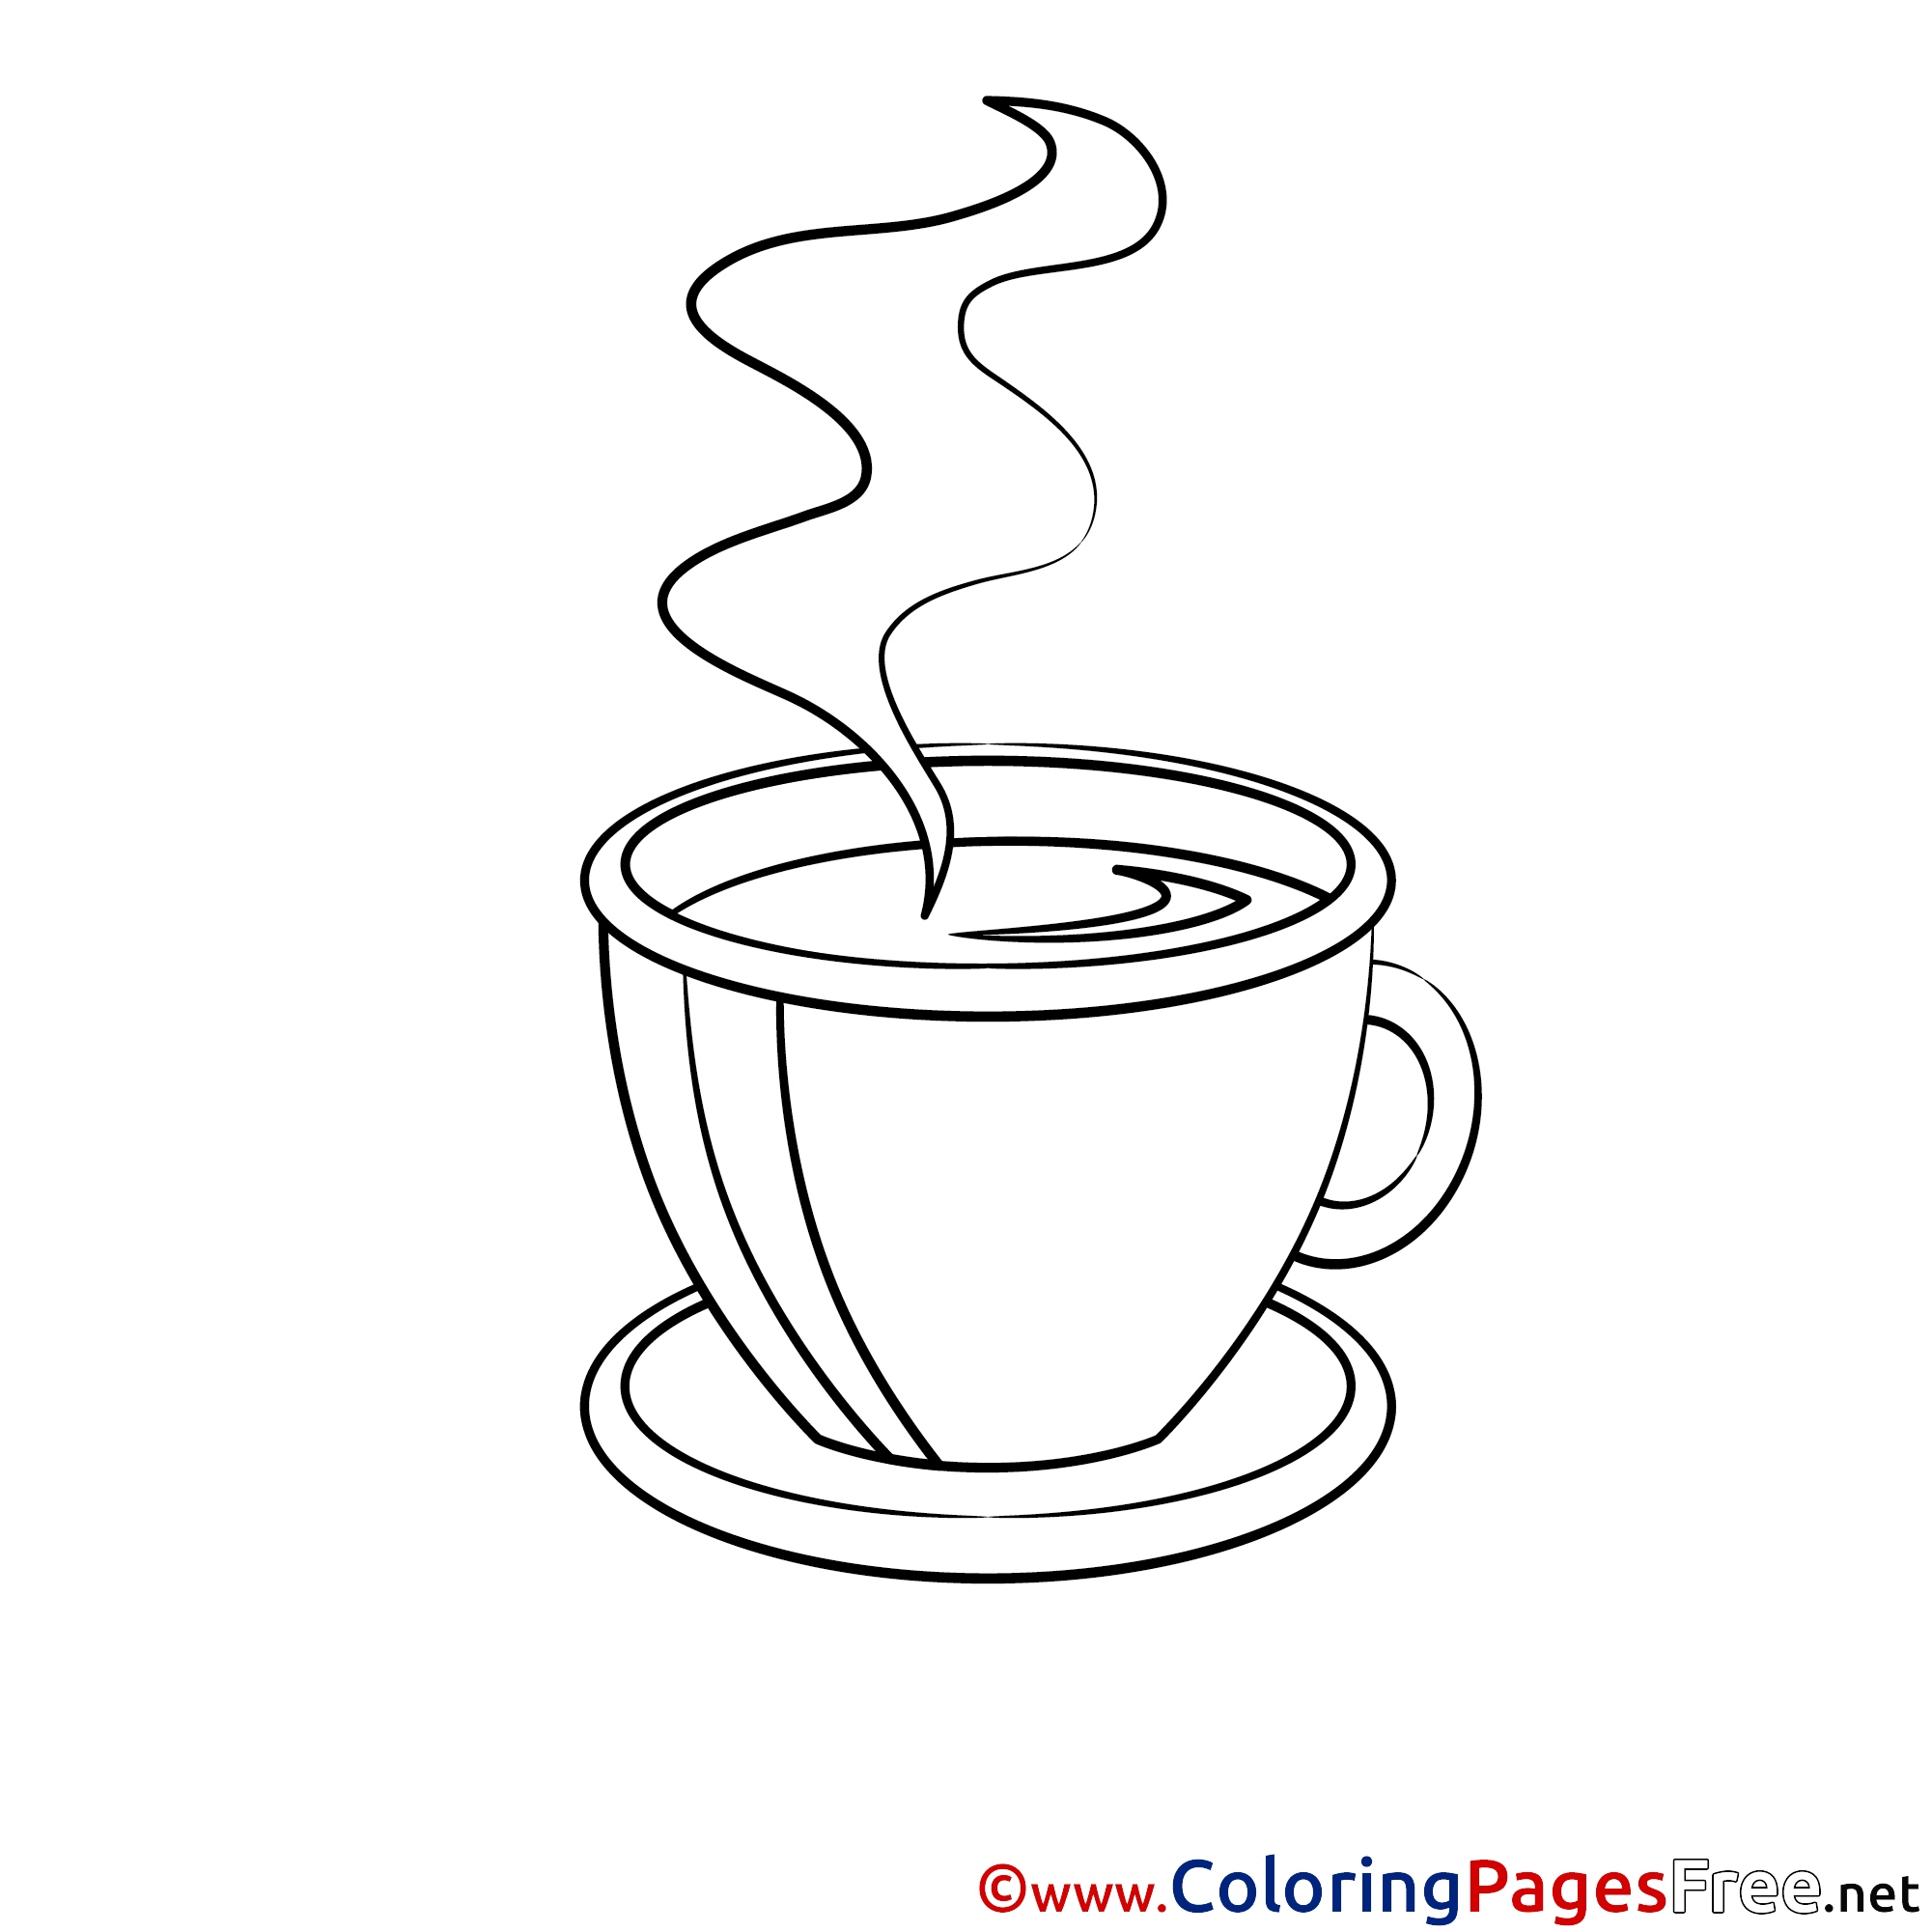 It is an image of Irresistible Coffee Cup Coloring Page